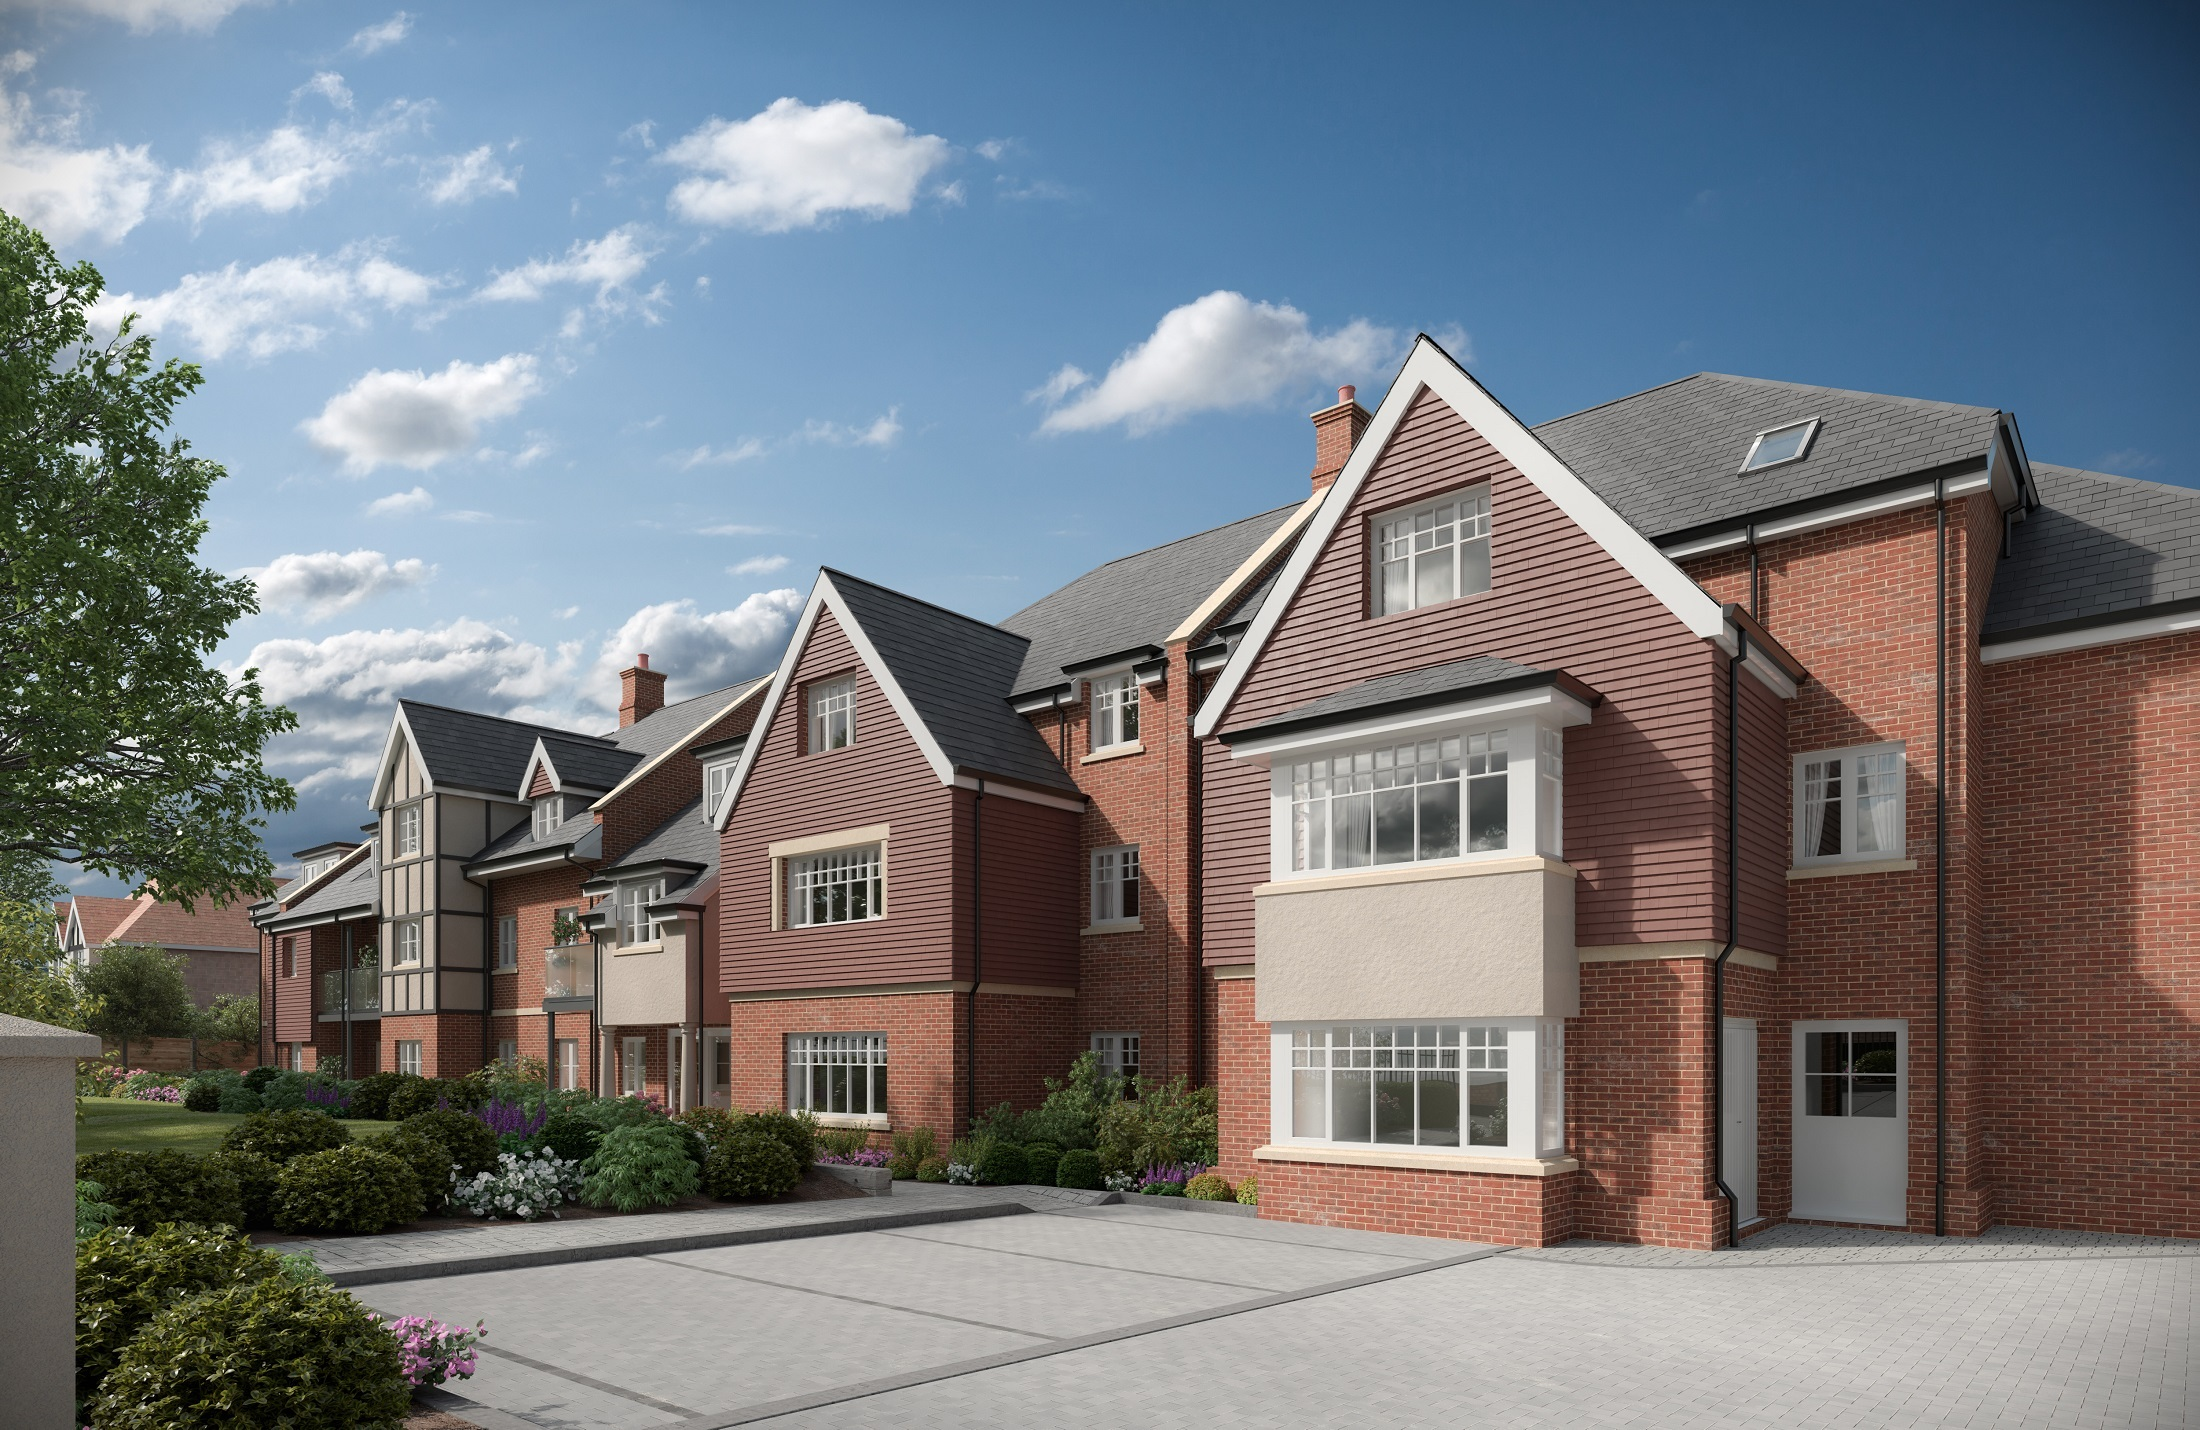 CGI image of what new Sanderstead retirement home will look like